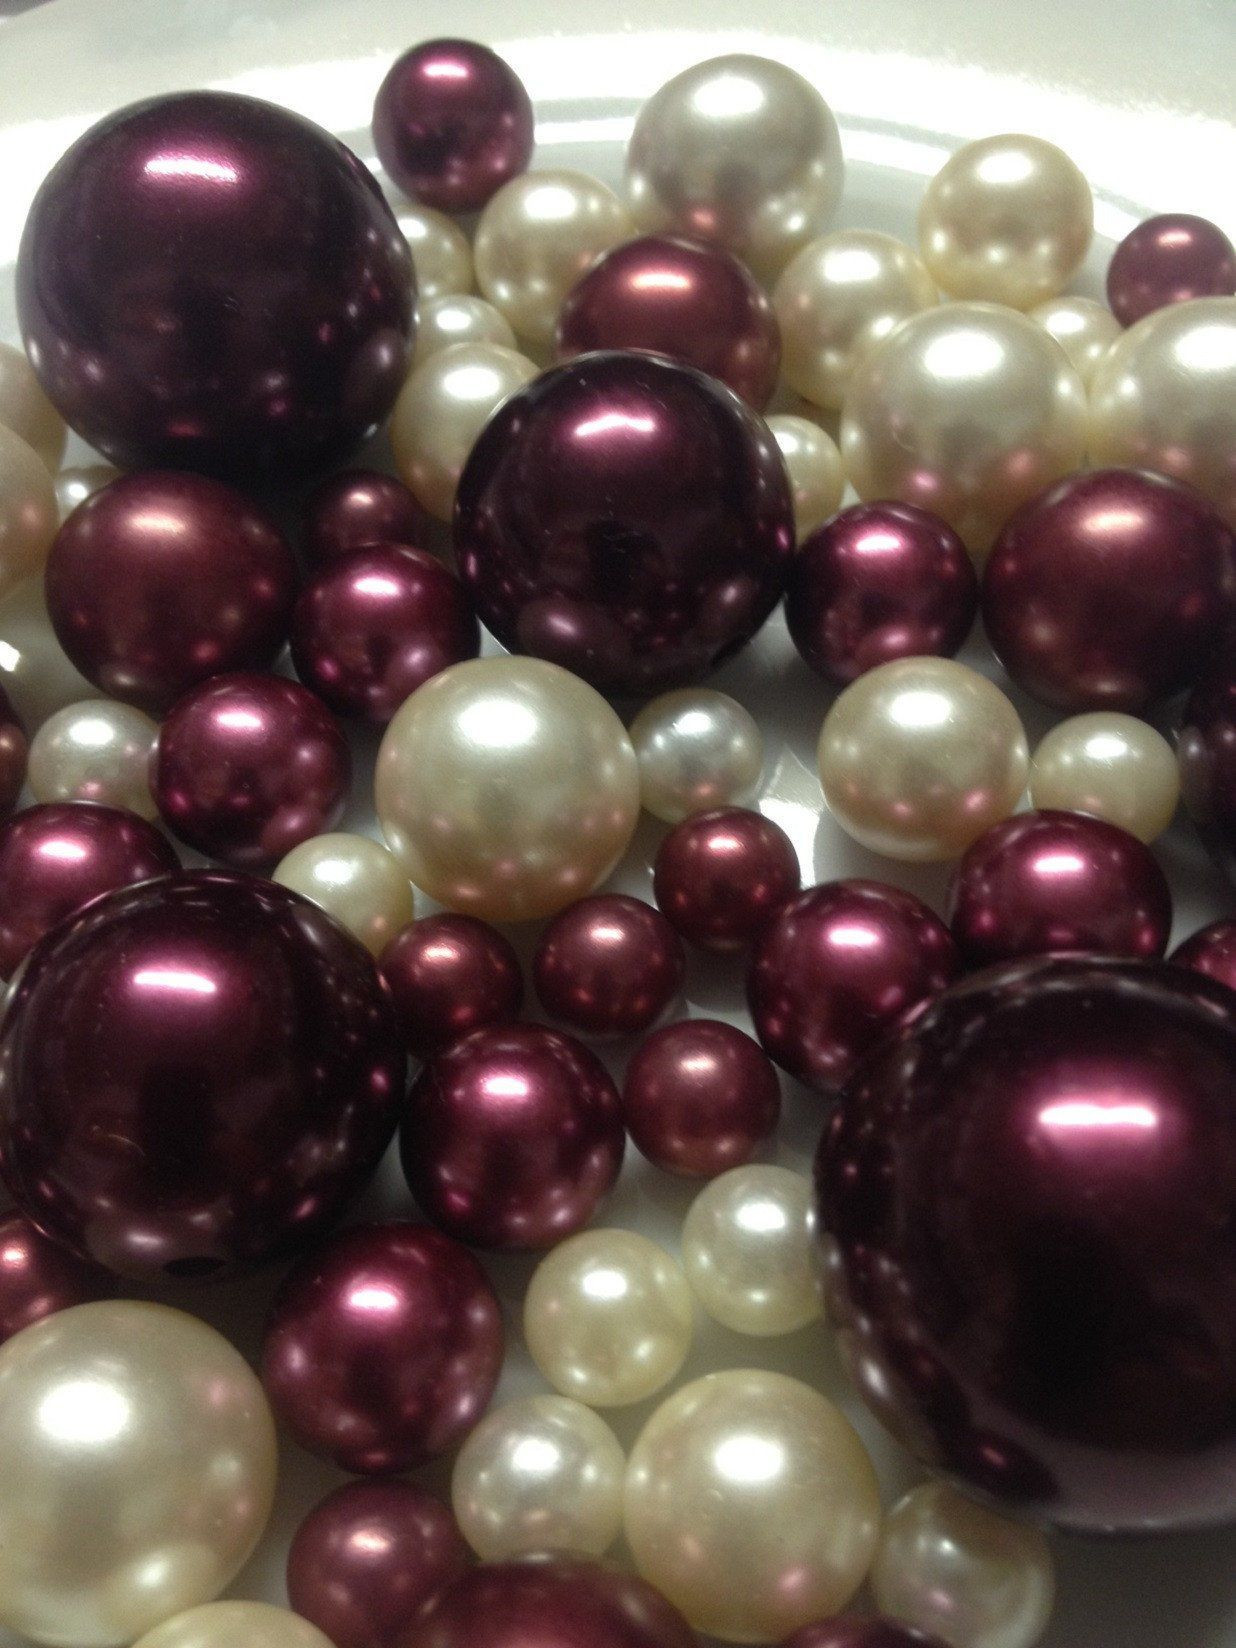 nautical vase filler of burgundy and ivory pearls vase filler pearls pearl table scatters pertaining to burgundy and ivory pearls vase filler pearls pearl table scatters diy floating pearl